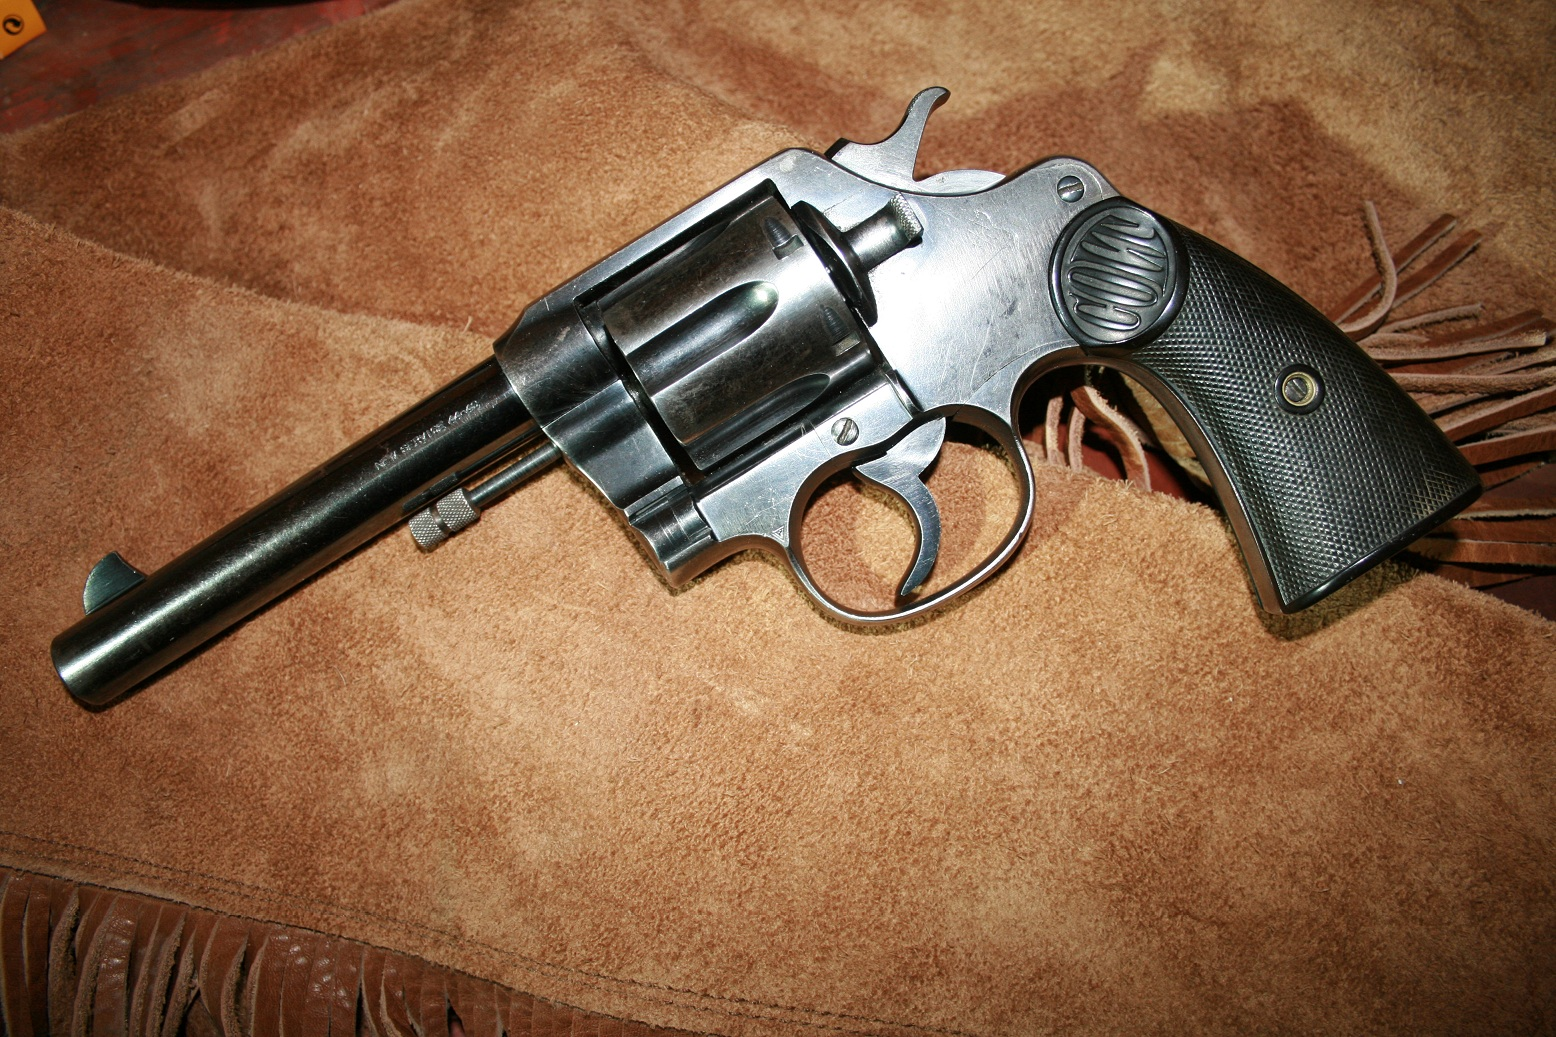 The New Service was a heavy framed revolver built for the big bore cartridges of its day, including the .45 Colt, .476 Eley, .44-40 and .38 Special, among others. This big-boned handgun was used by law enforcement and military personnel to great extent in the first half of the 20th Century, and rightly so. It not only was built for heavy, hard-hitting calibers, it was made to last.